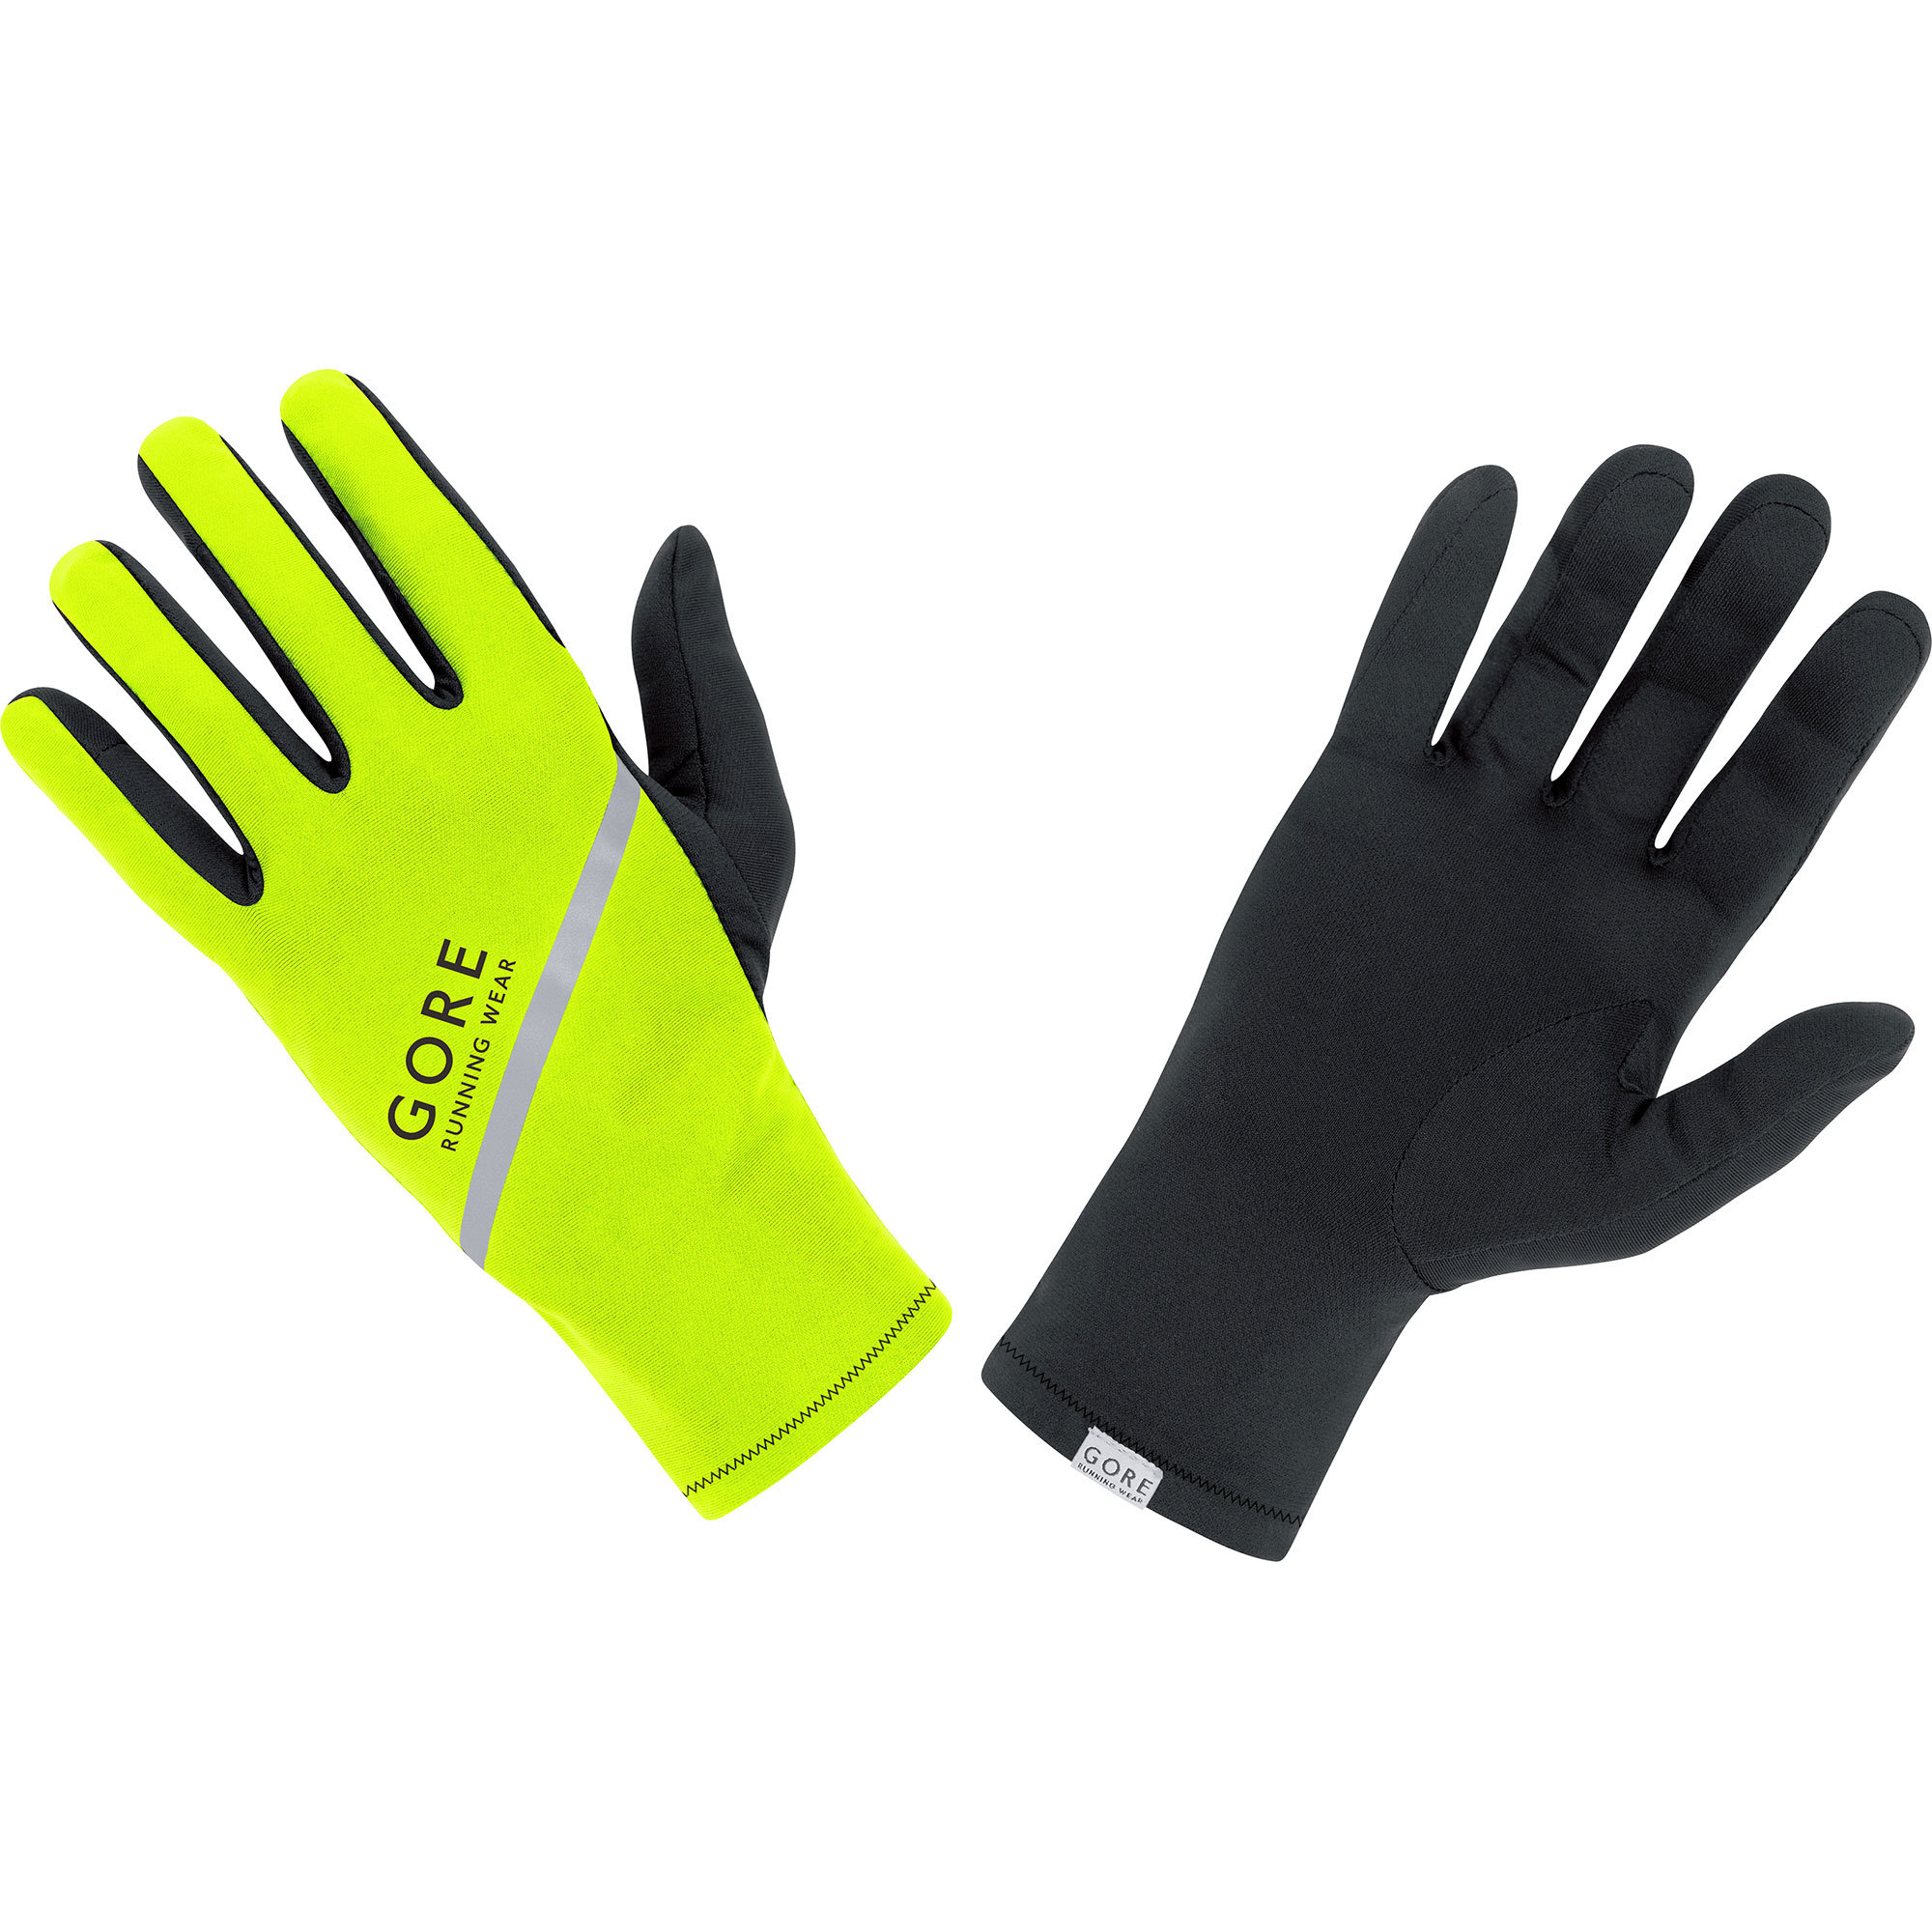 Gore Essential Light Gloves in Neon Schwarz